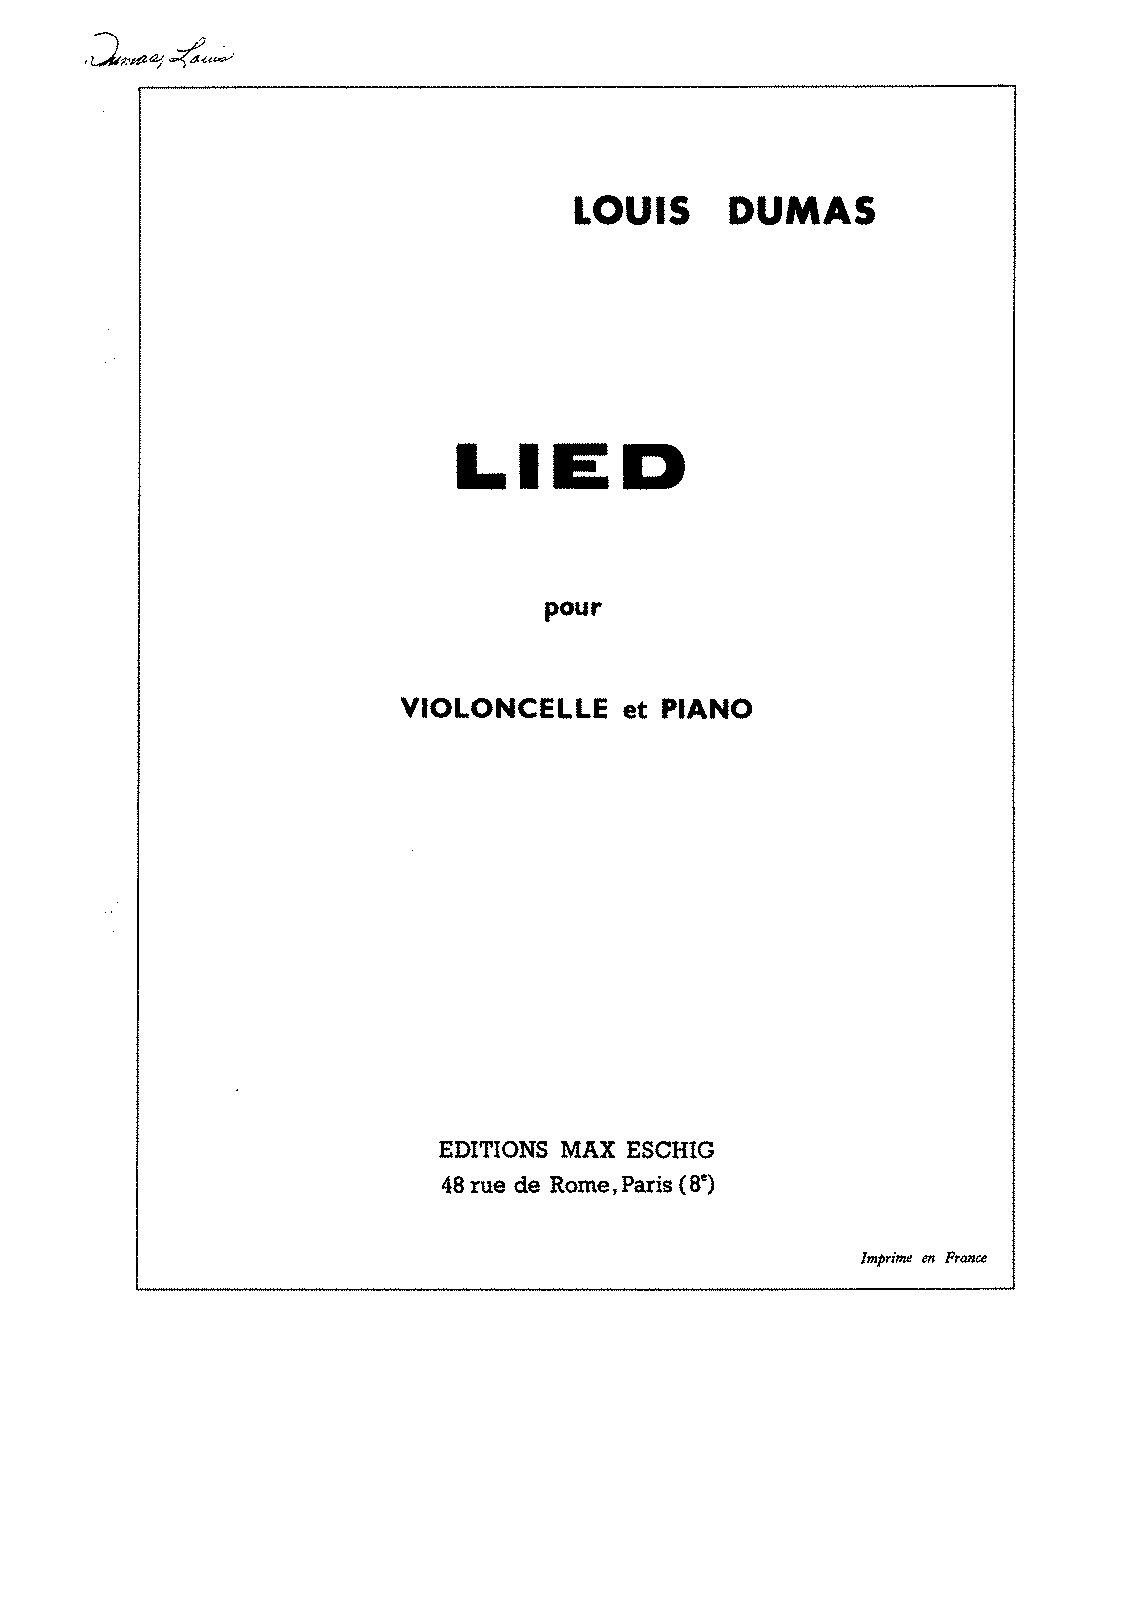 PMLP400485-Dumas - Lied for Cello and Piano score.pdf